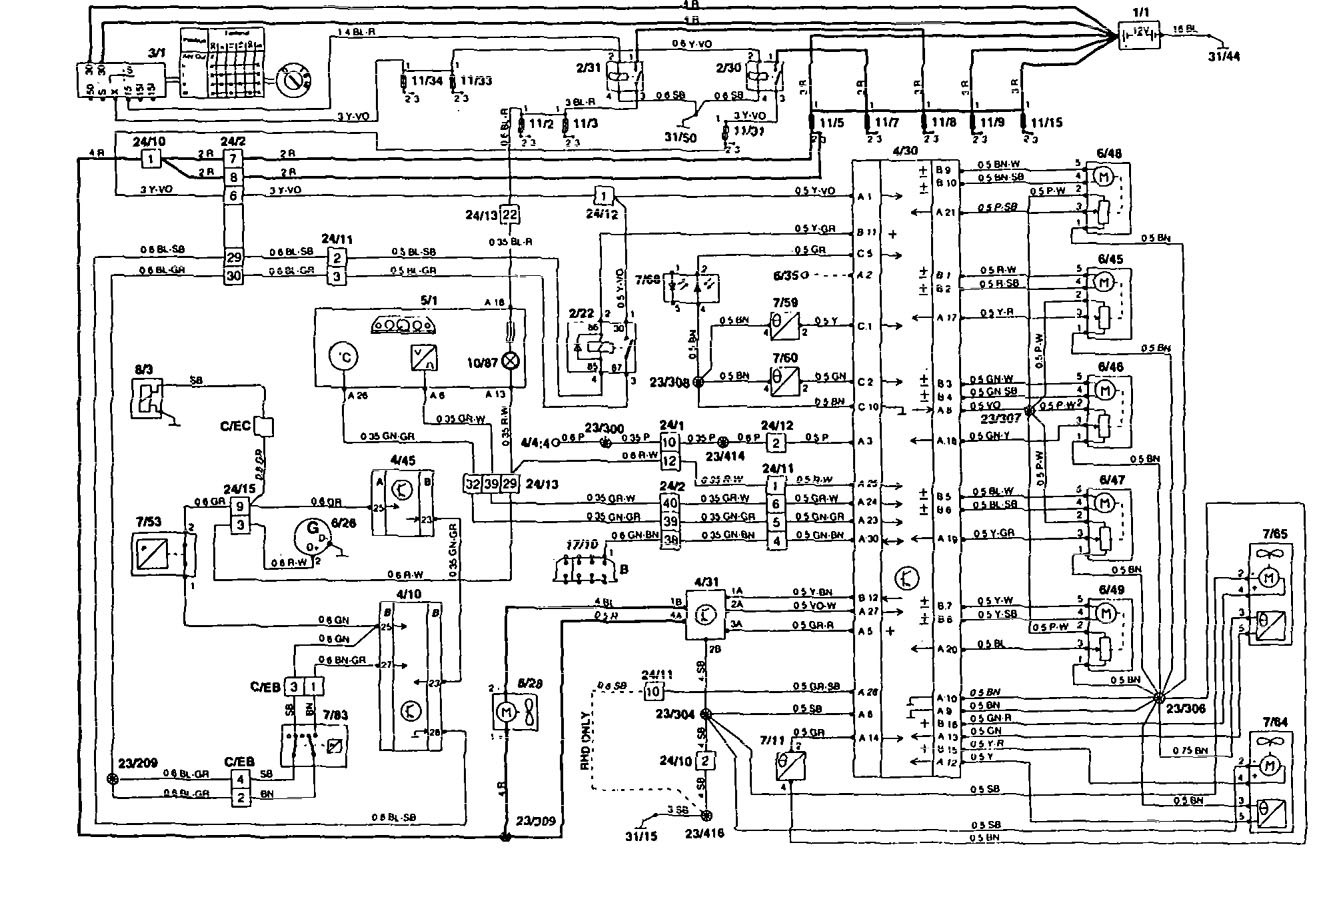 volvo 850 wiring diagram hvac controls 1 1995 volvo 850 (1995) wiring diagrams hvac controls carknowledge 1994 volvo 850 wiring diagram at gsmportal.co